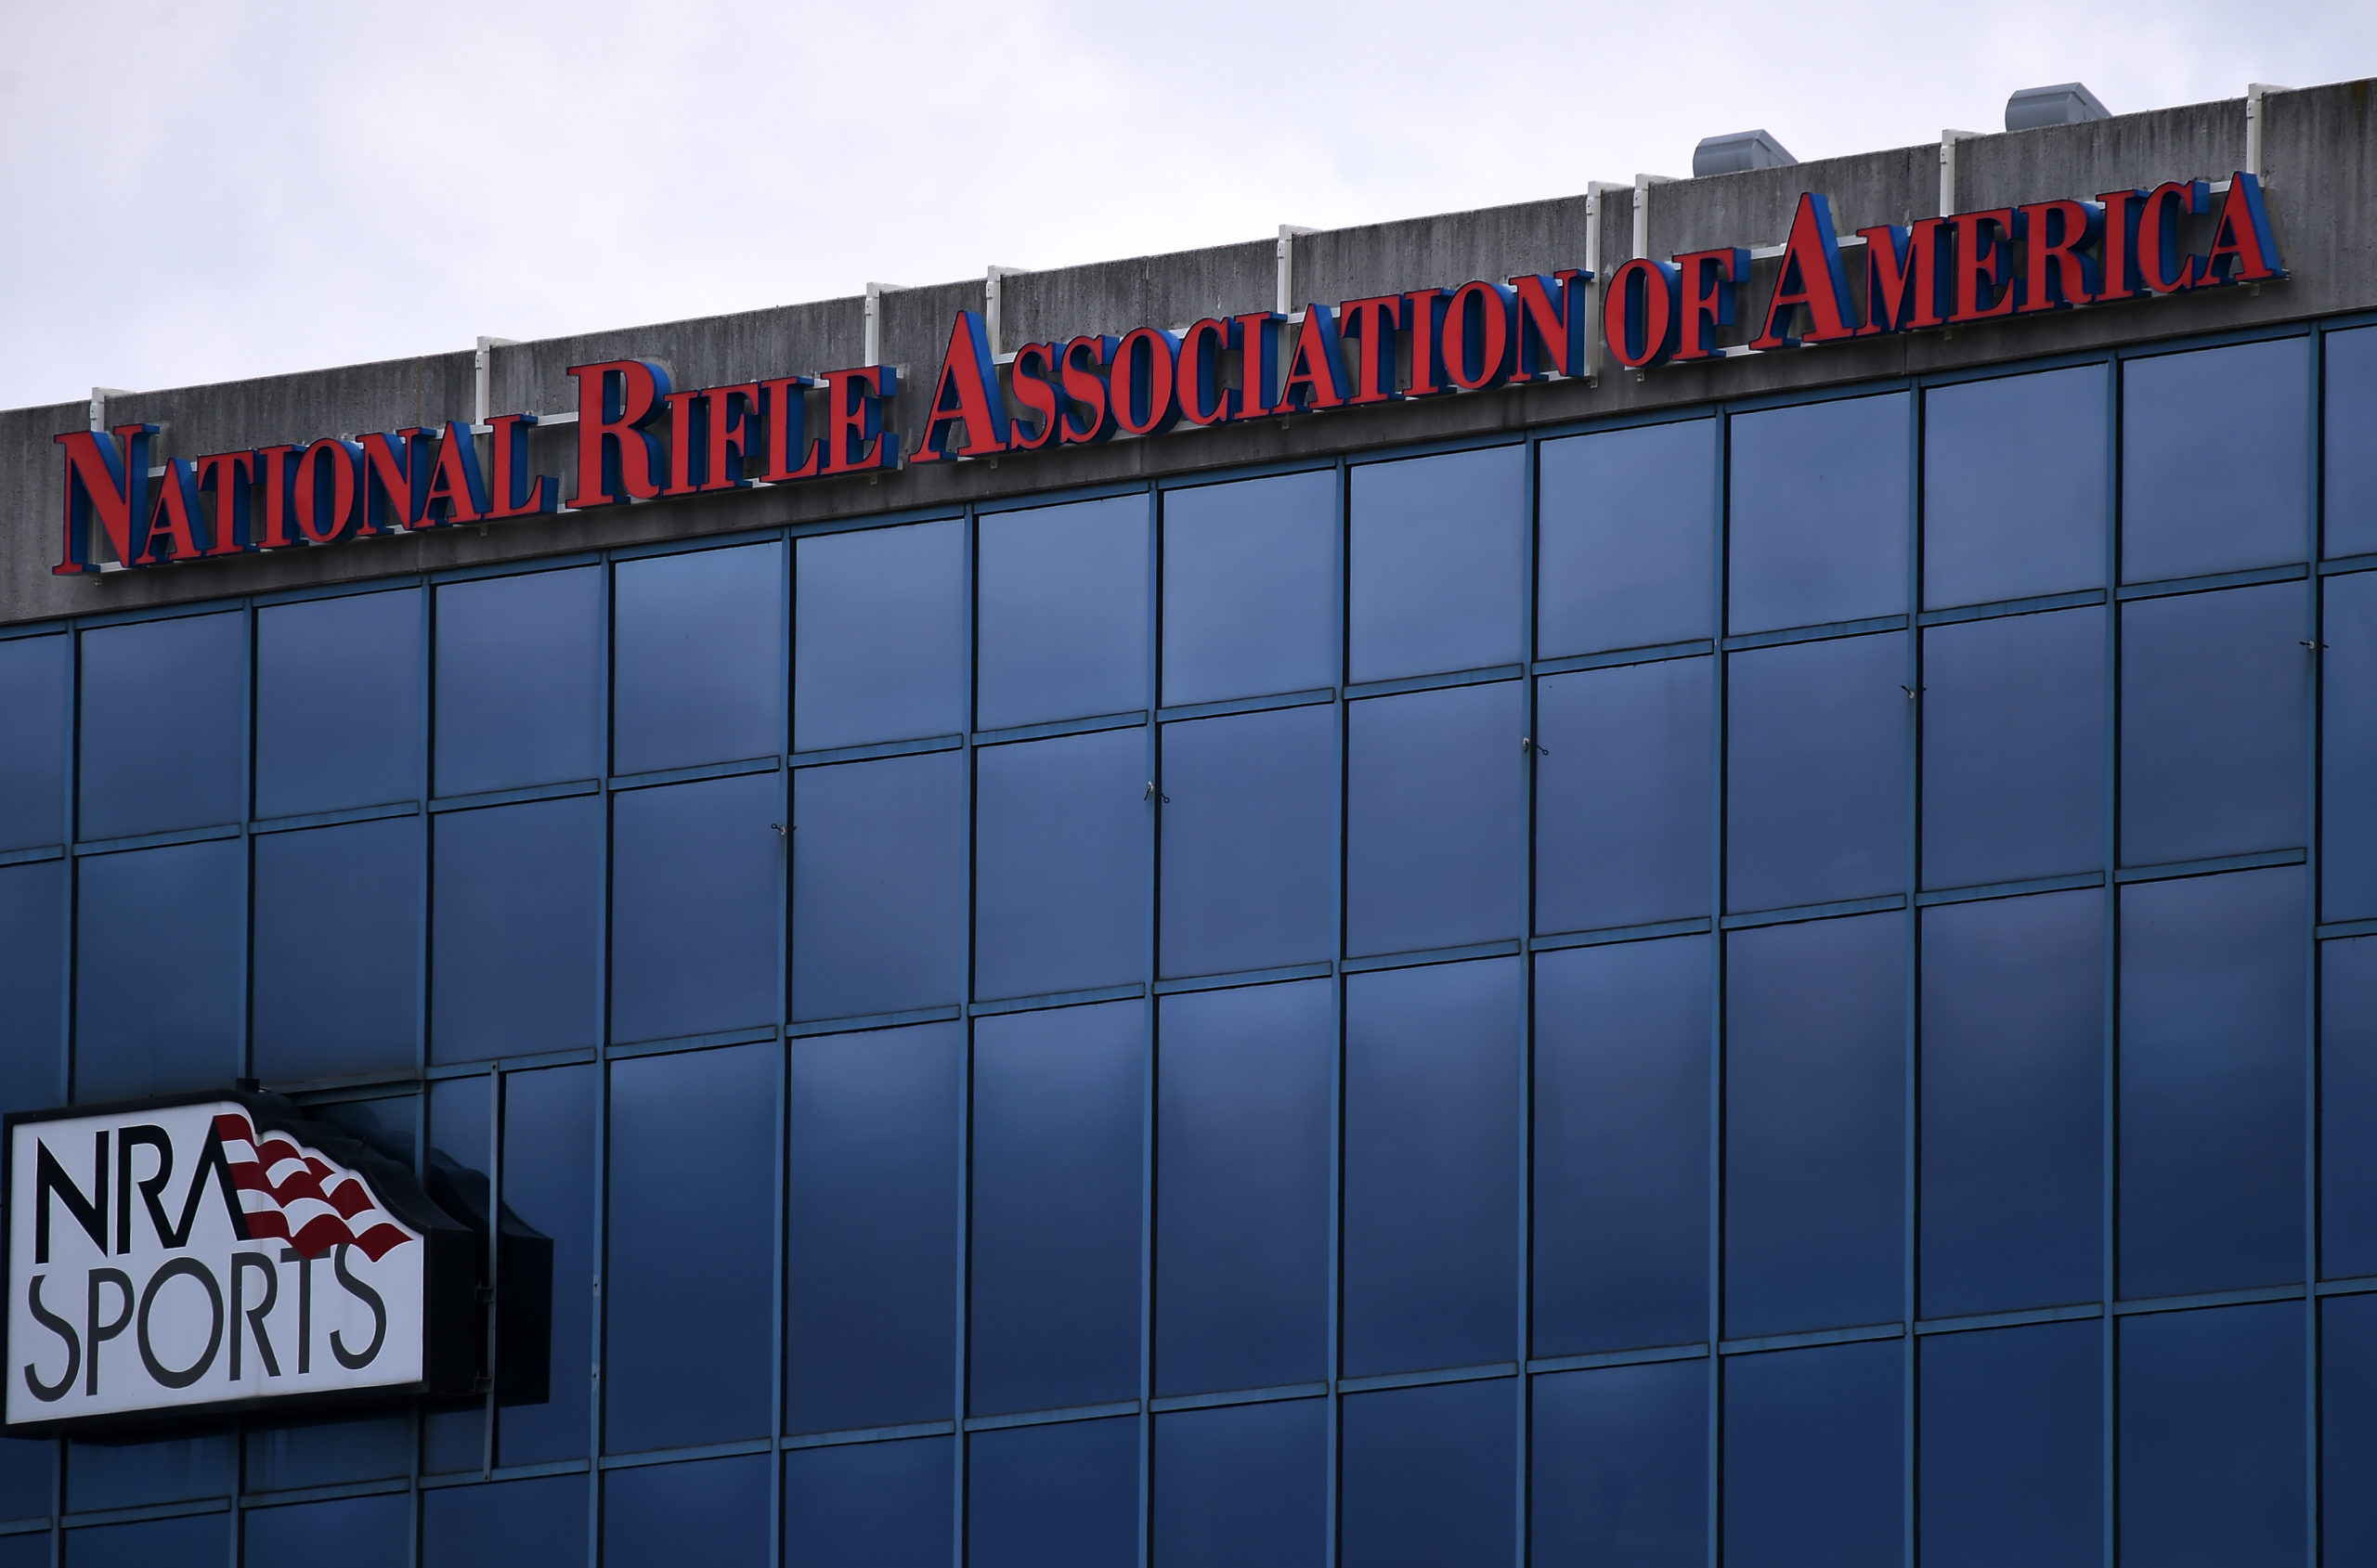 The National Riffle Association of America (NRA) headquarters on August 6, 2020 in Fairfax, Virginia. (Photo by OLIVIER DOULIERY/AFP via Getty Images)